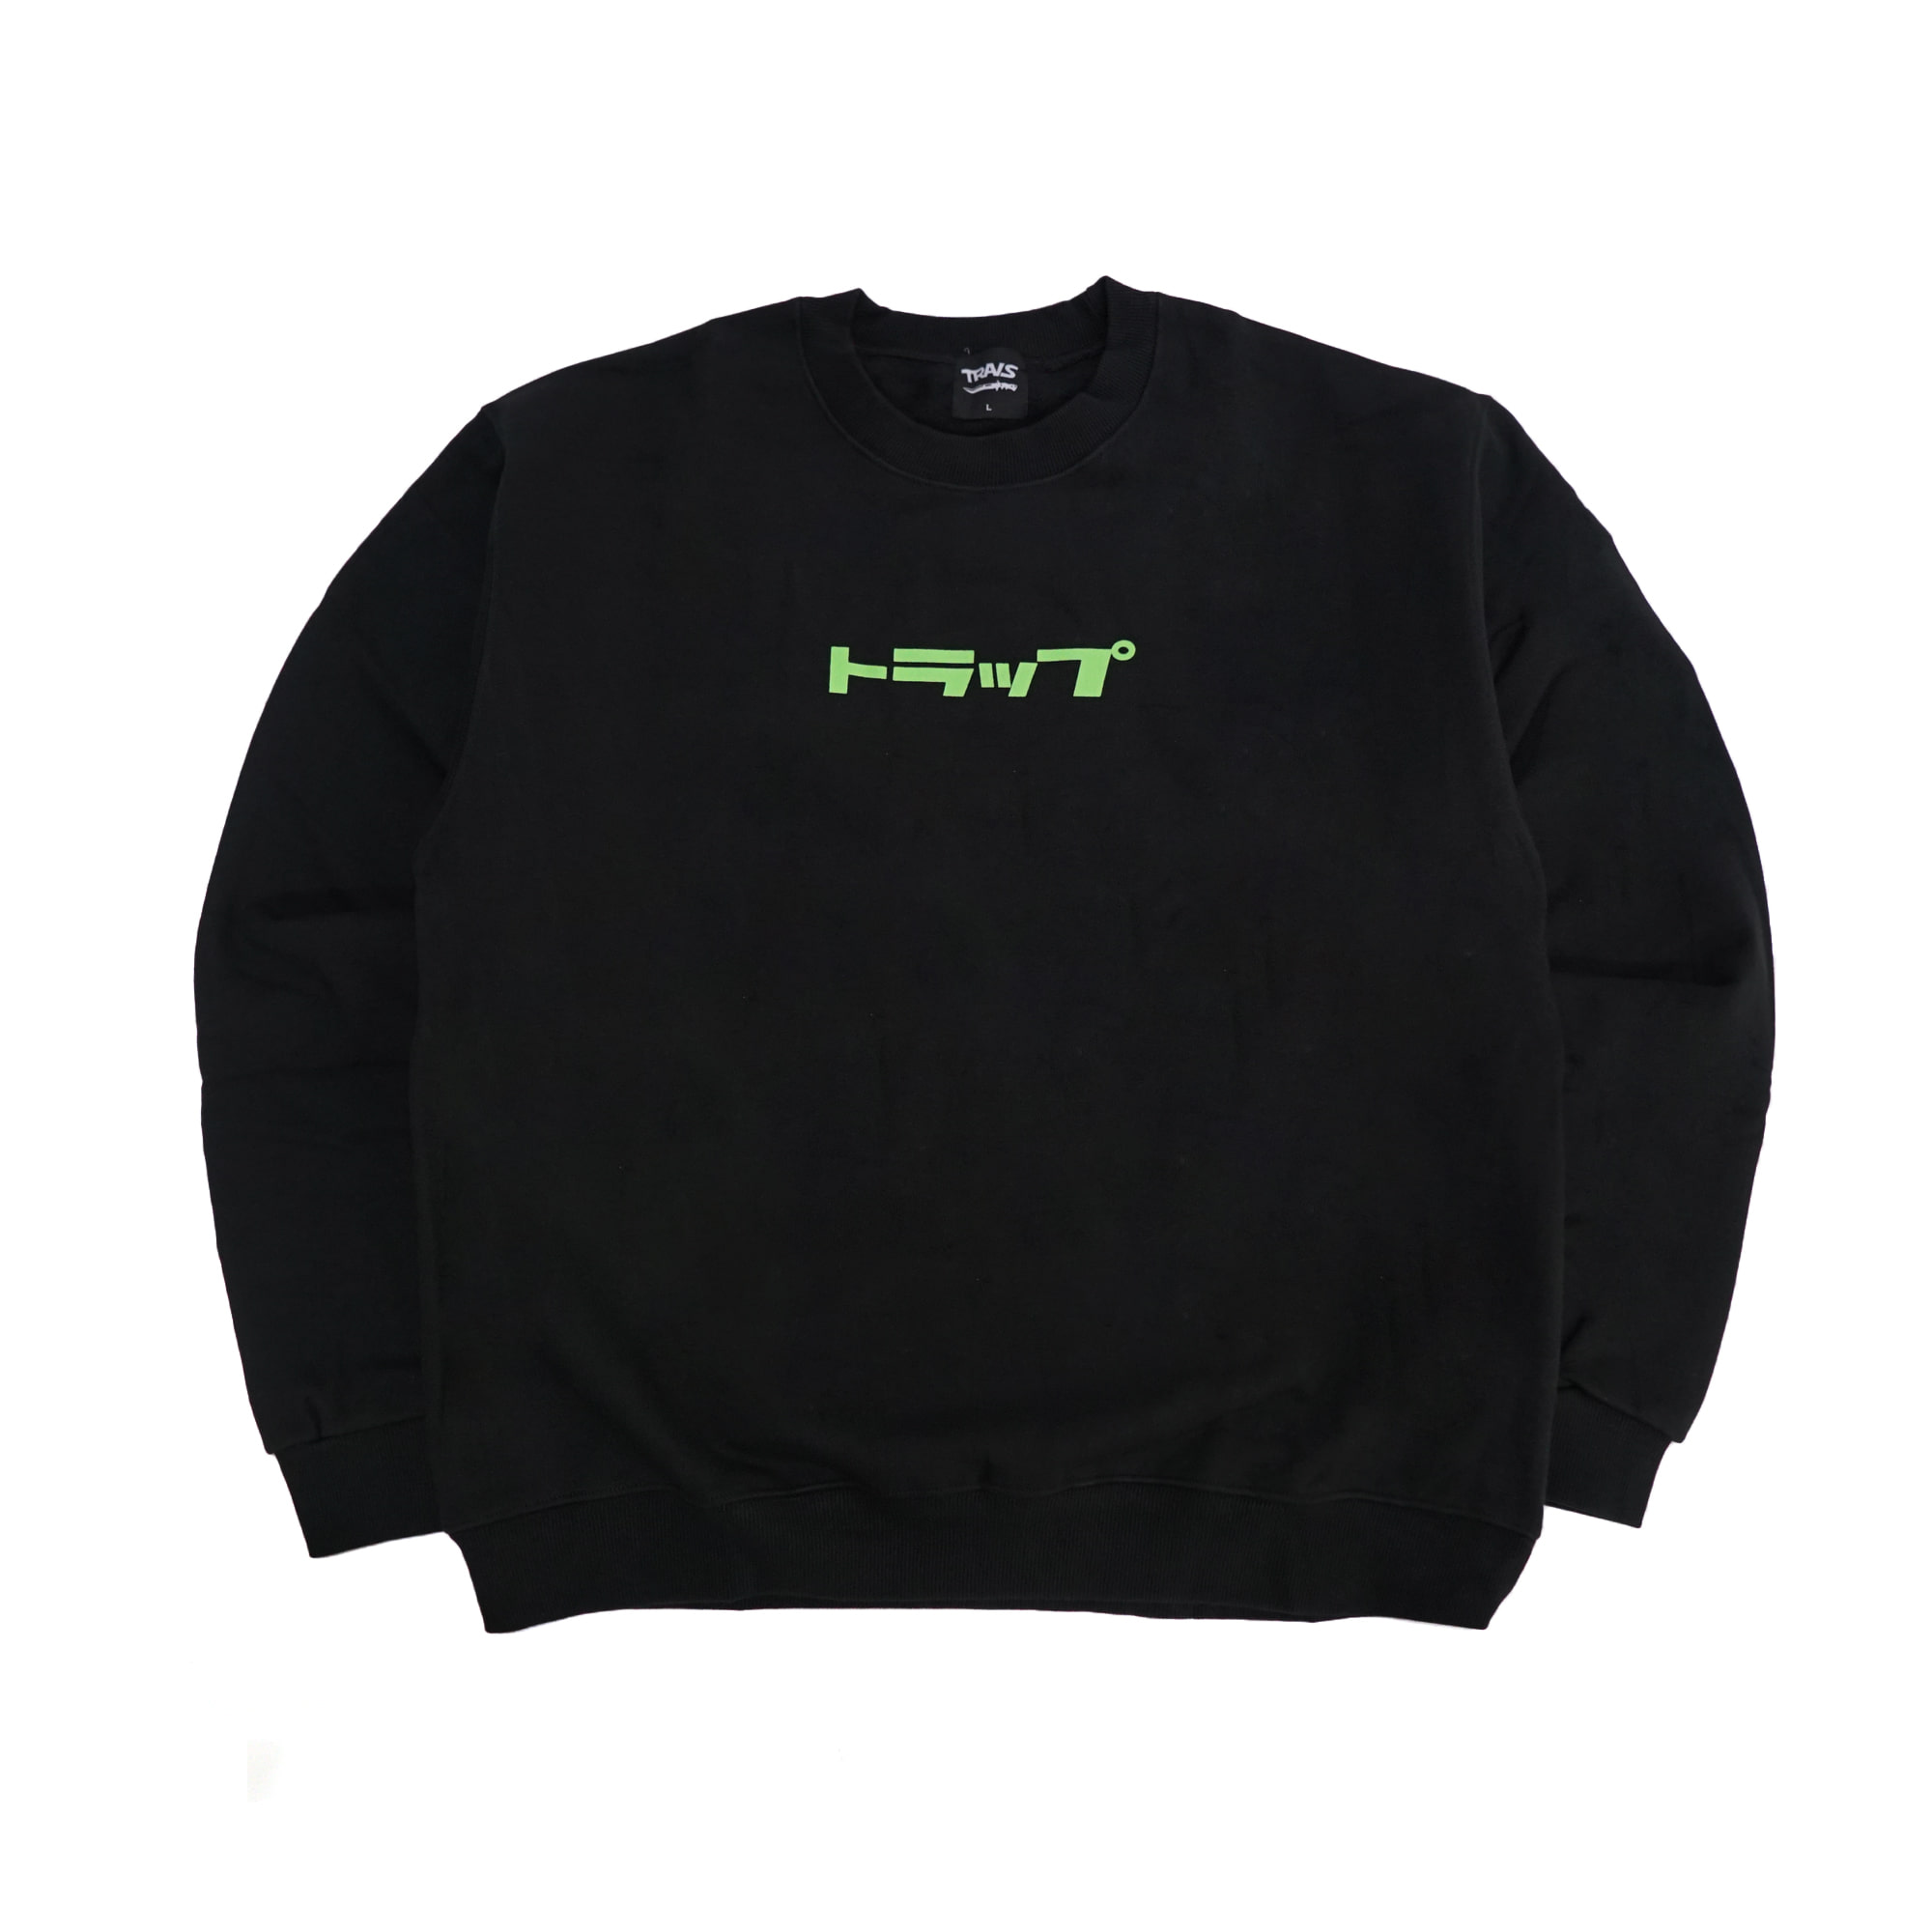 [TRAVS] TRAP CREWNECK SWEATSHIRTS - BLACK / NEON GREEN